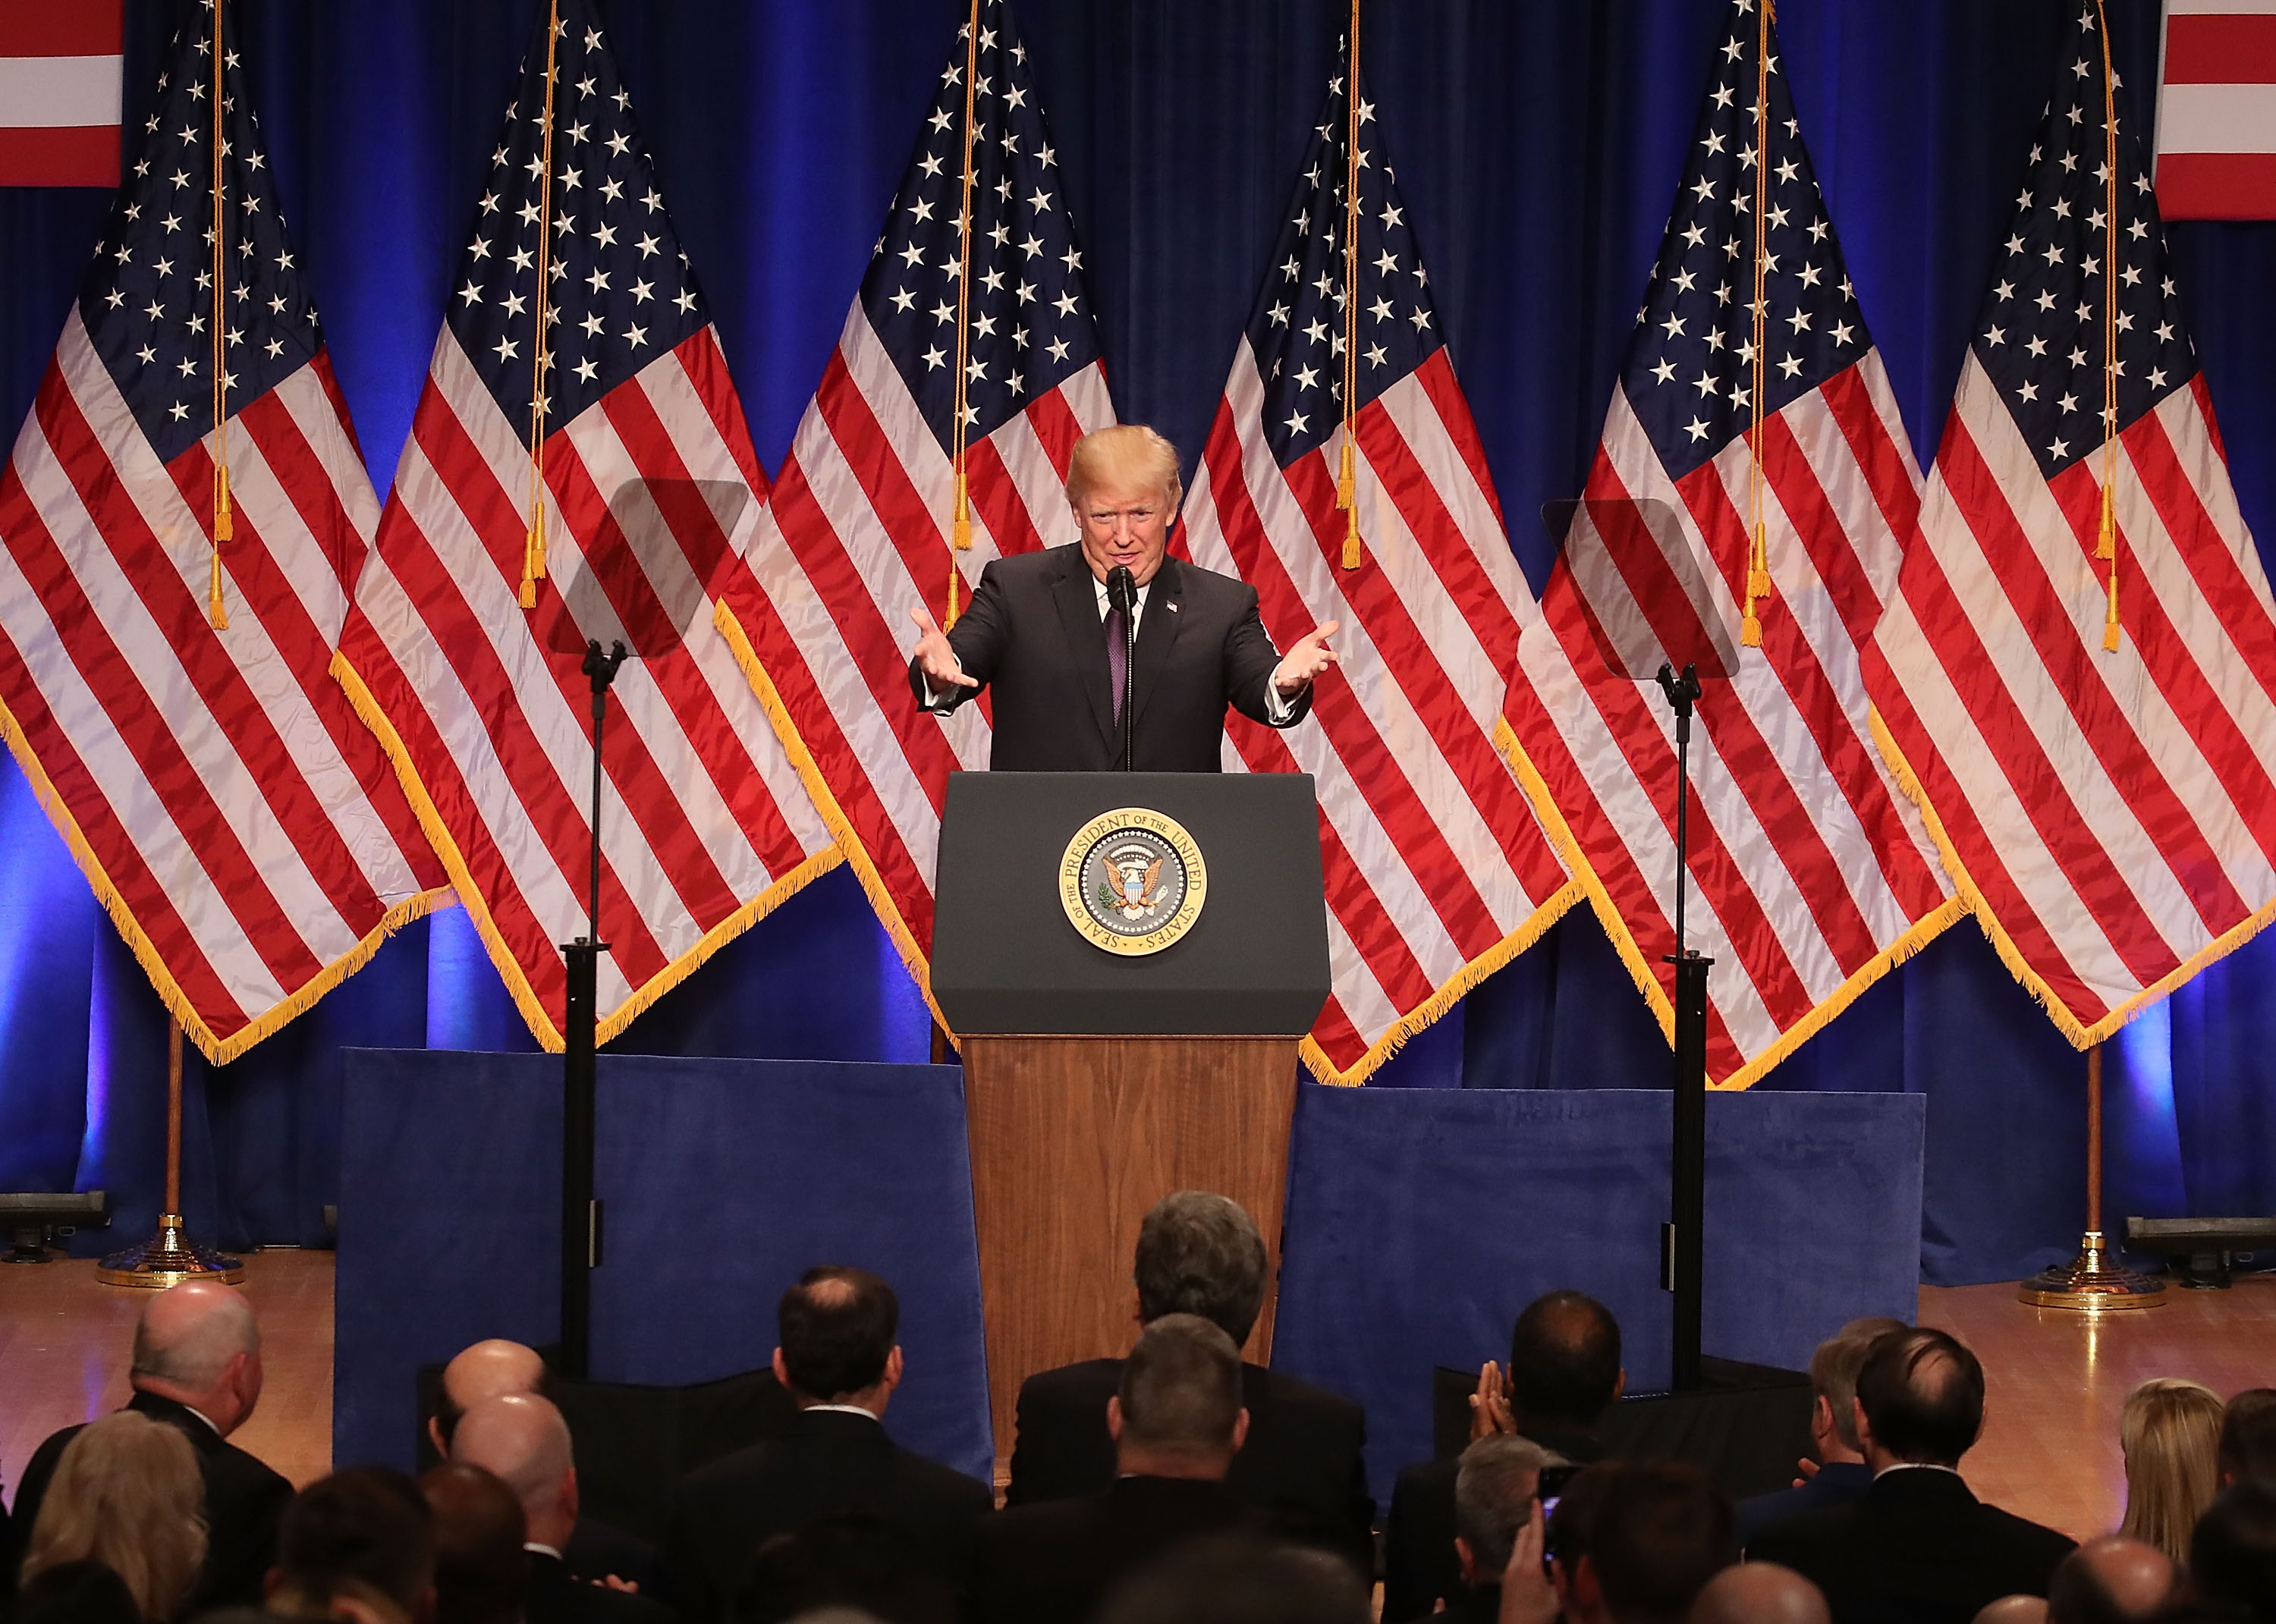 President Donald Trump delivers a speech at the Ronald Reagan Building December 18, 2017 in Washington, DC